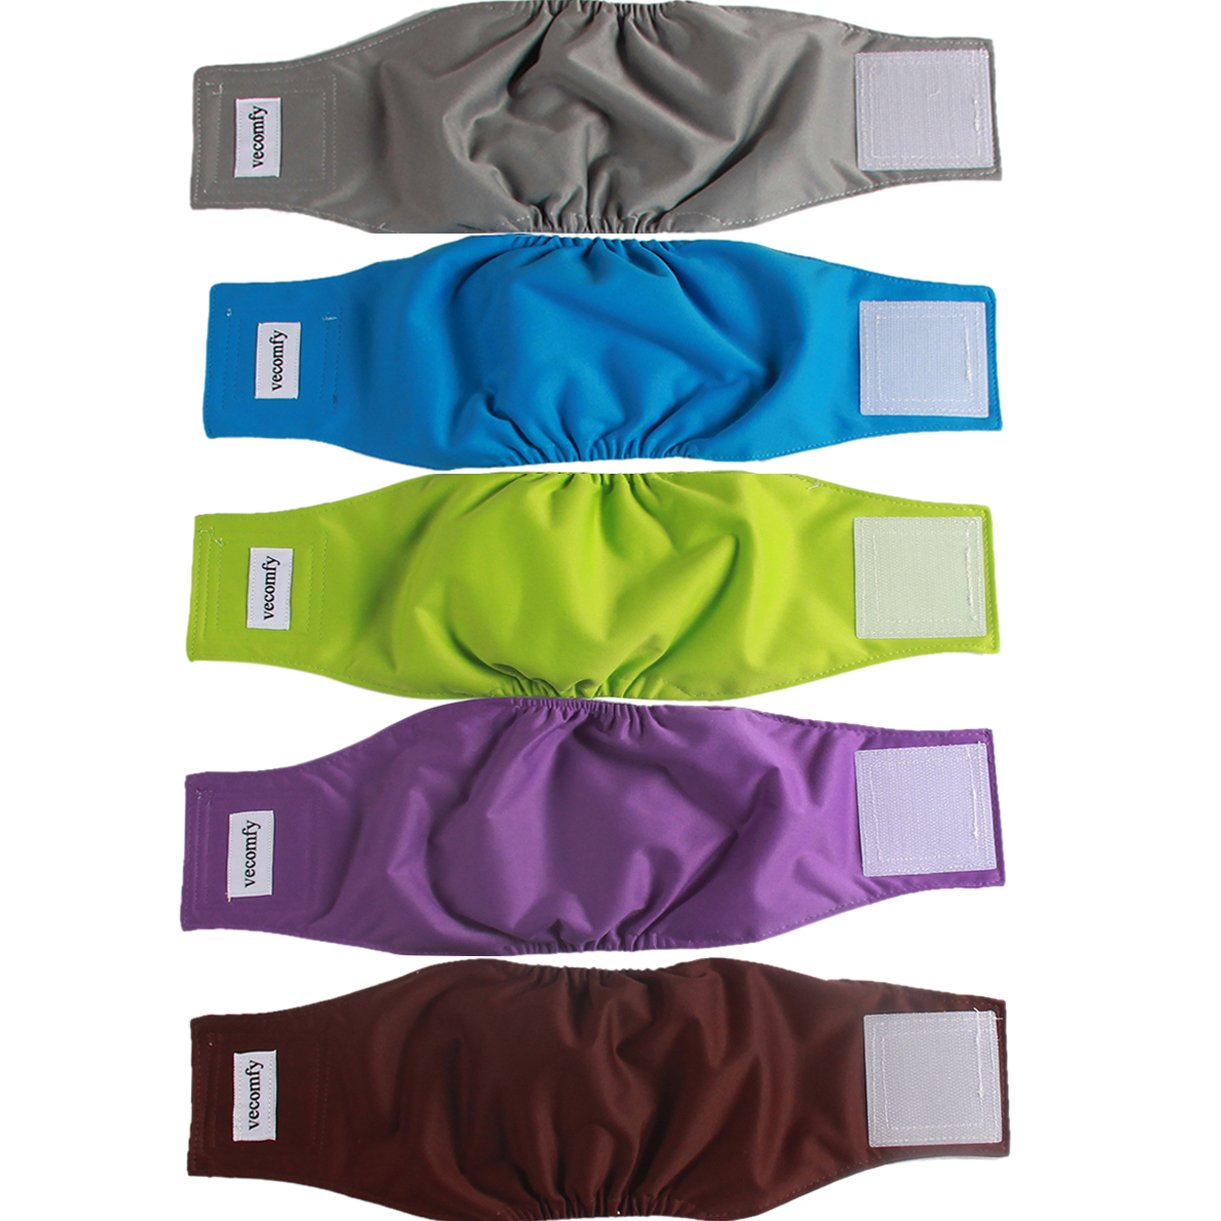 vecomfy Belly Bands for Male Dogs 5 Pack,Premium Washable Reusable Large Dog Belly Wrap Leakproof Doggie Diapers,XL by vecomfy